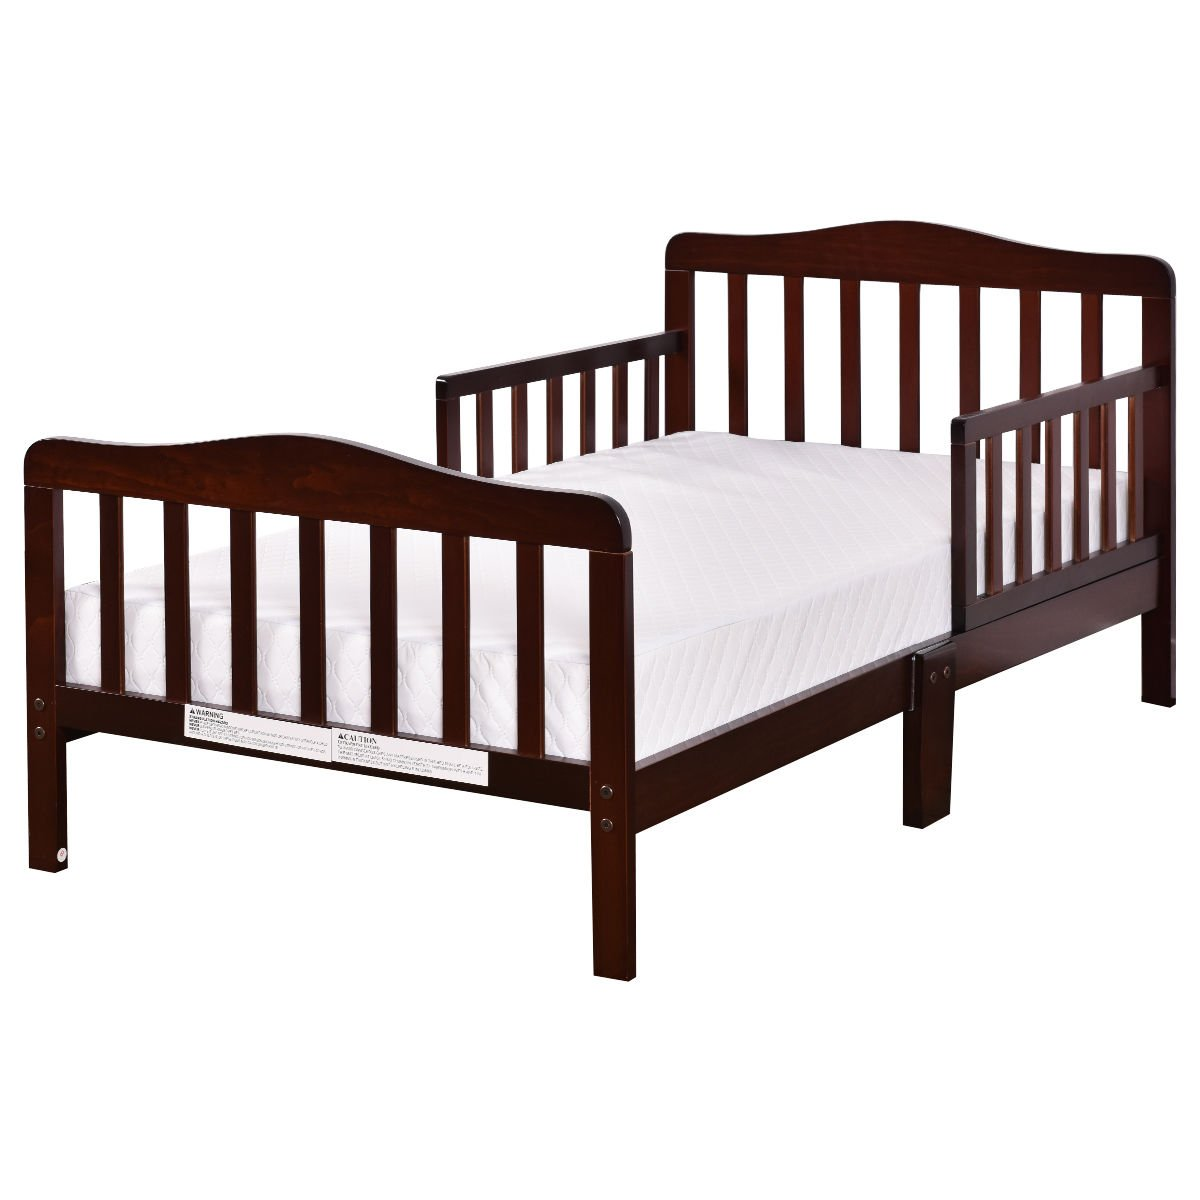 Espresso Pine wood Baby Bed With Ebook